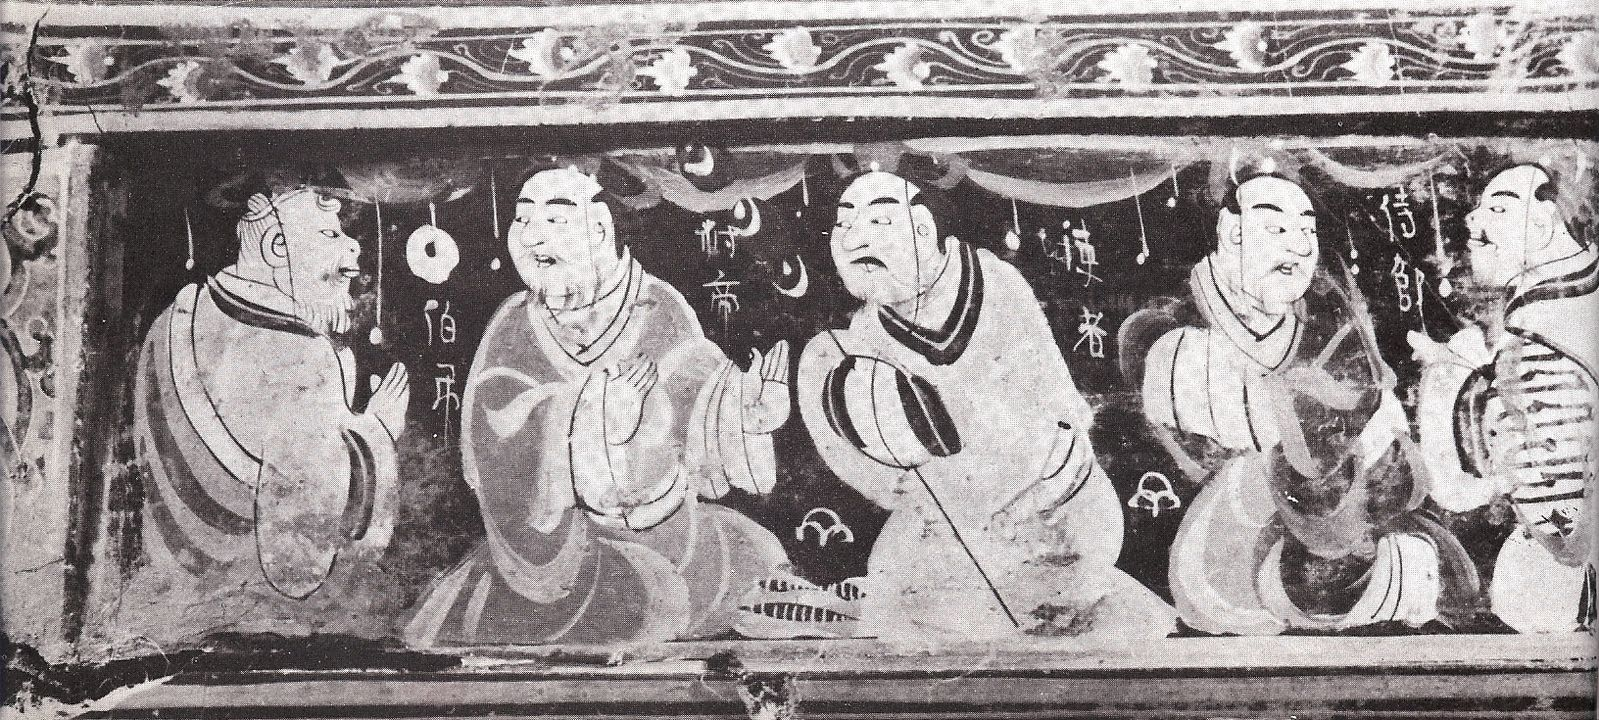 Ancient Chinese artist.  Paragons of Filial Piety . 1st or 2nd century CE.